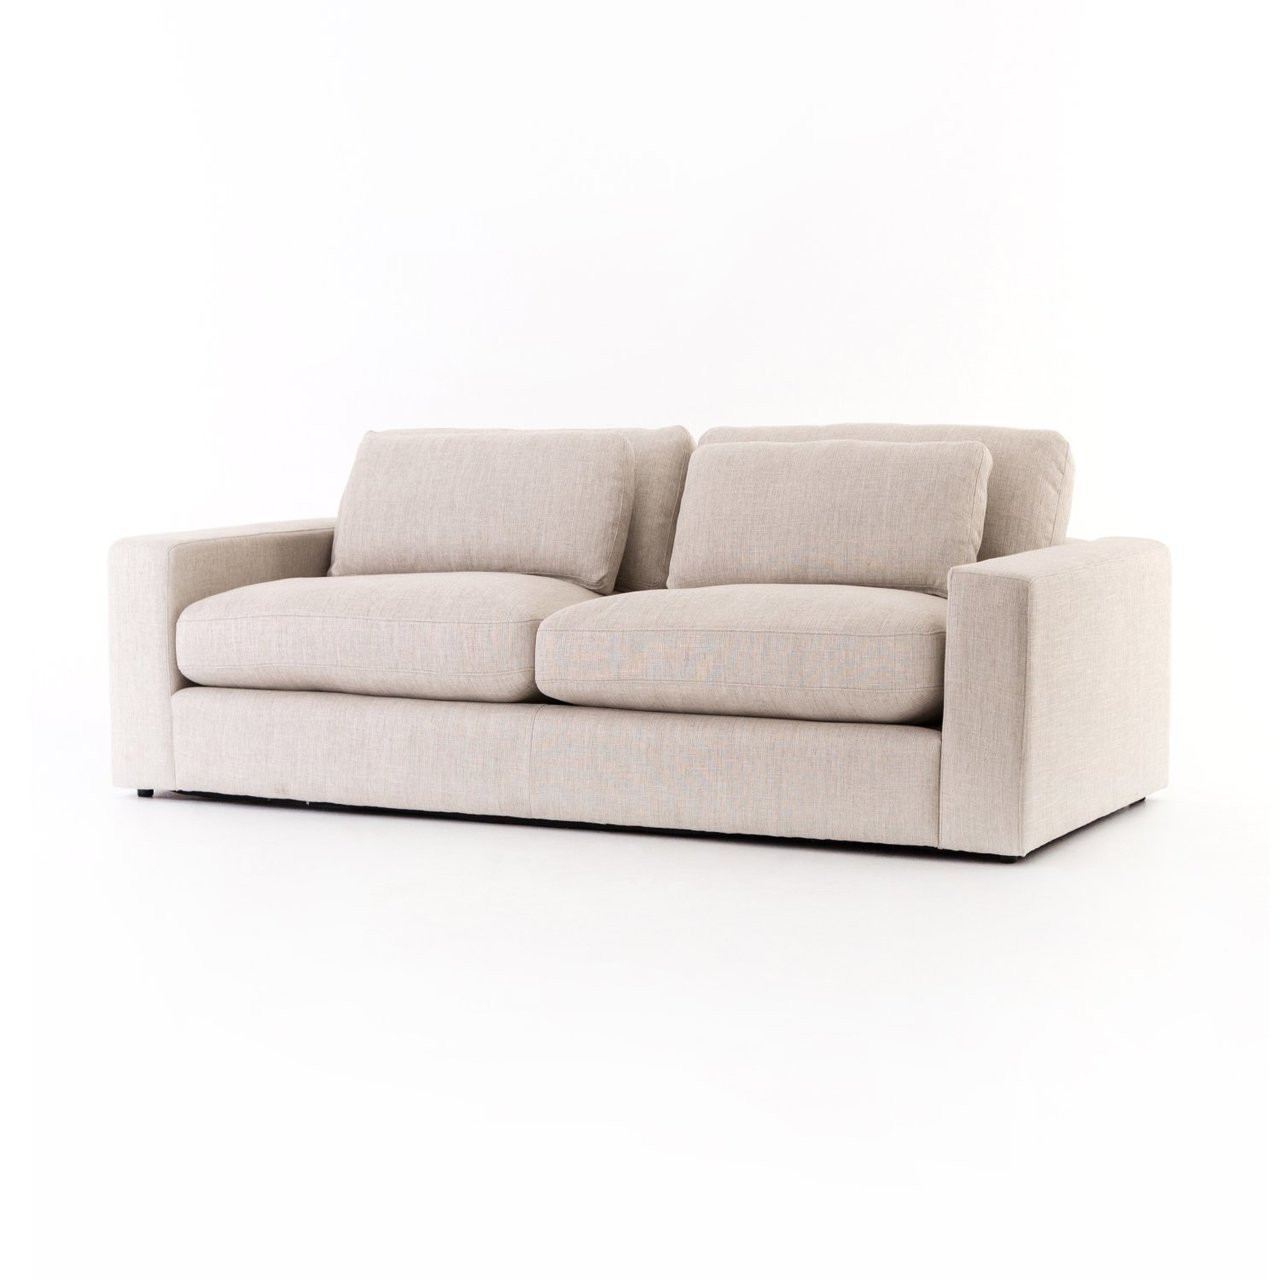 Square Sofa Bloor Contemporary Square Arm Sofa 82